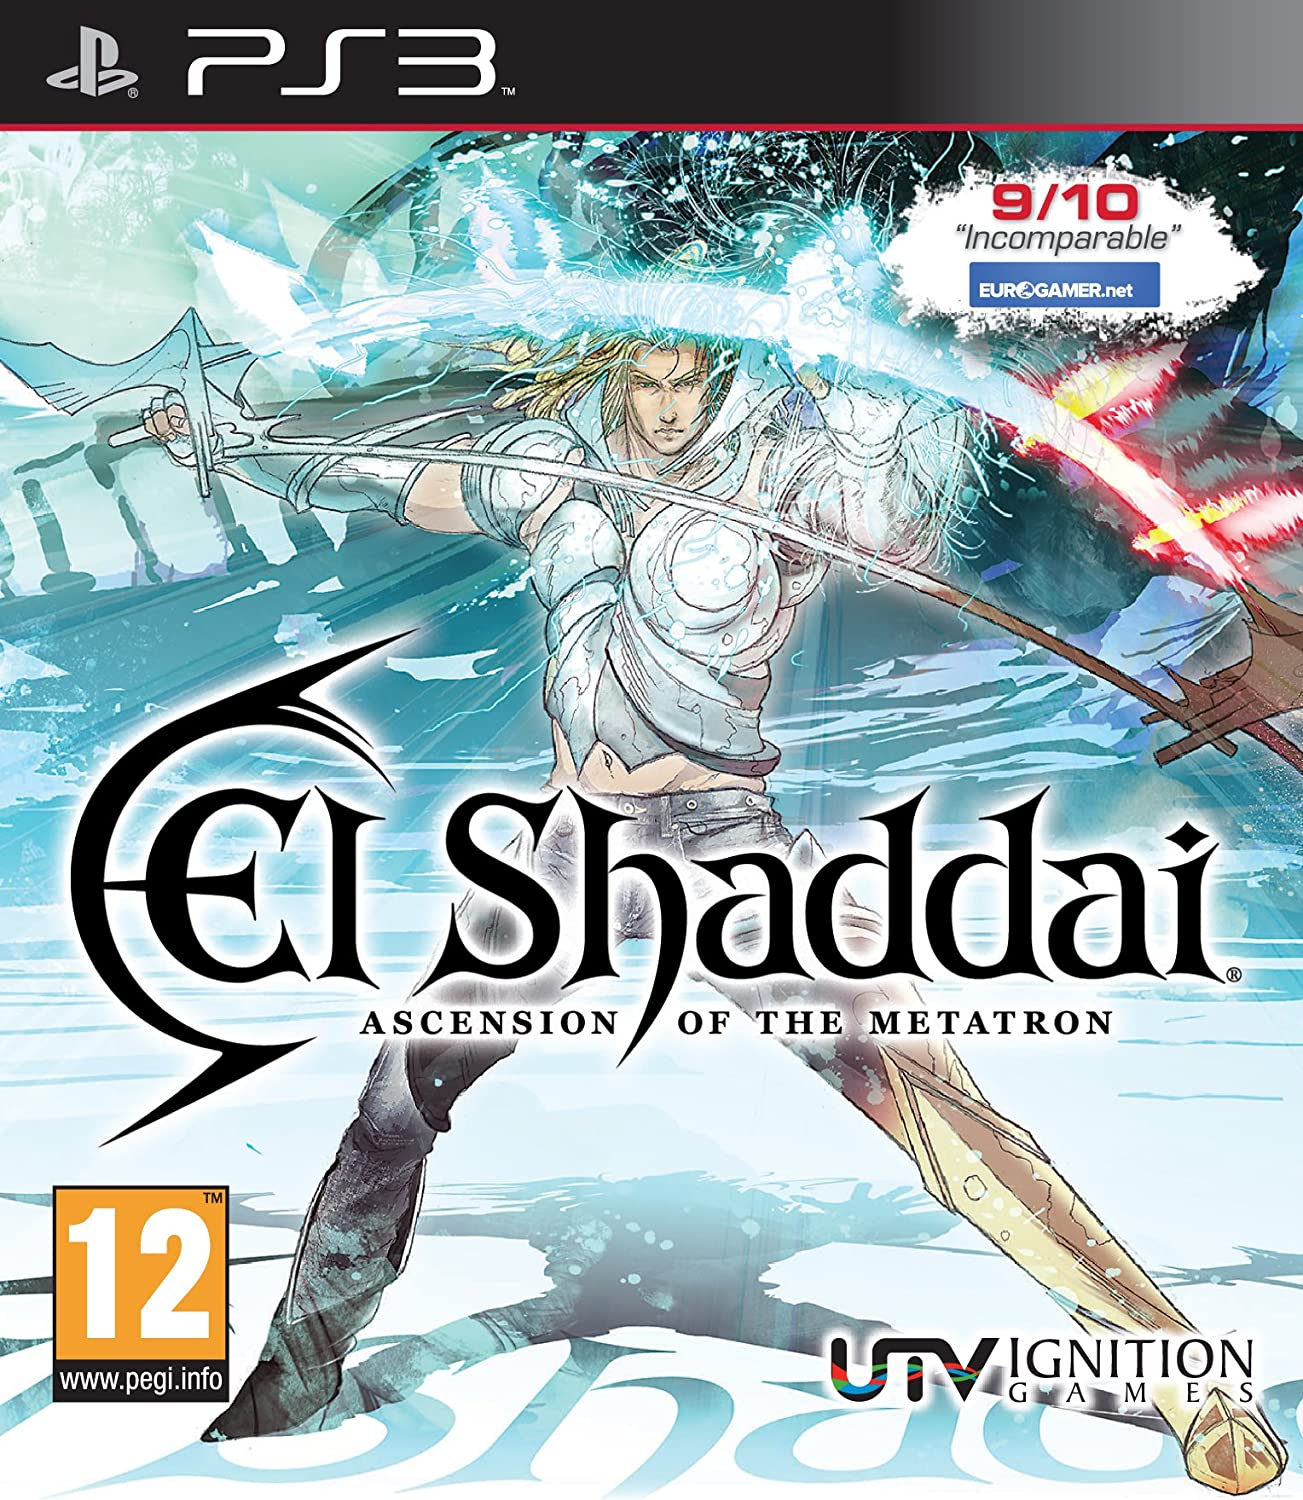 El Shaddai - Ascension of the Metatron (PS3): Amazon.co.uk: PC ...